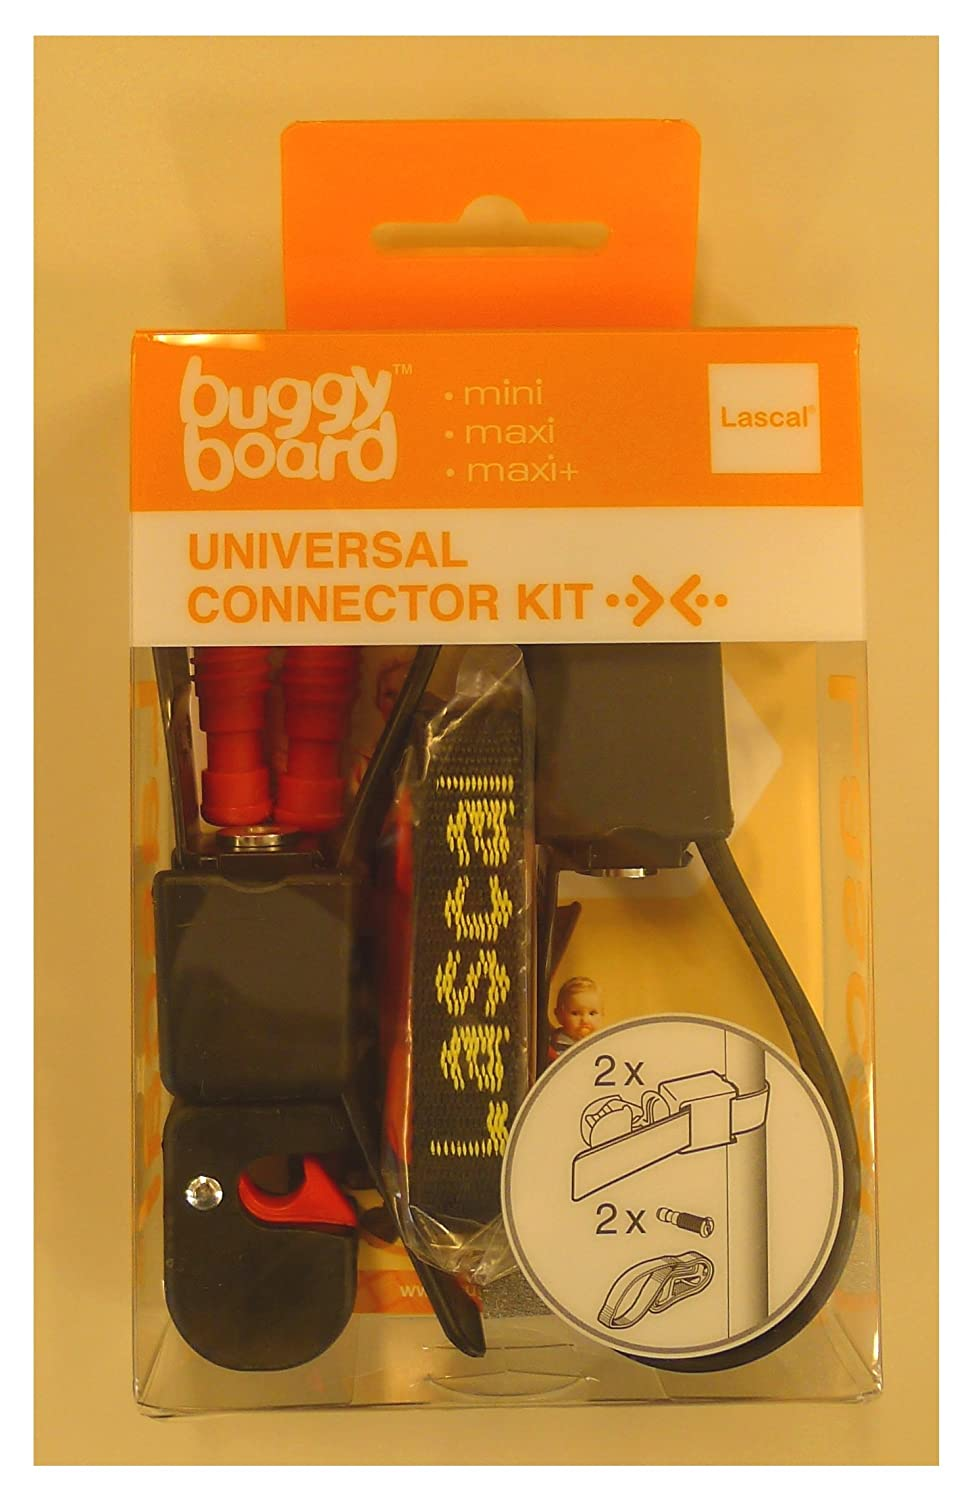 Universal Connector Kit Lascal Buggyboard